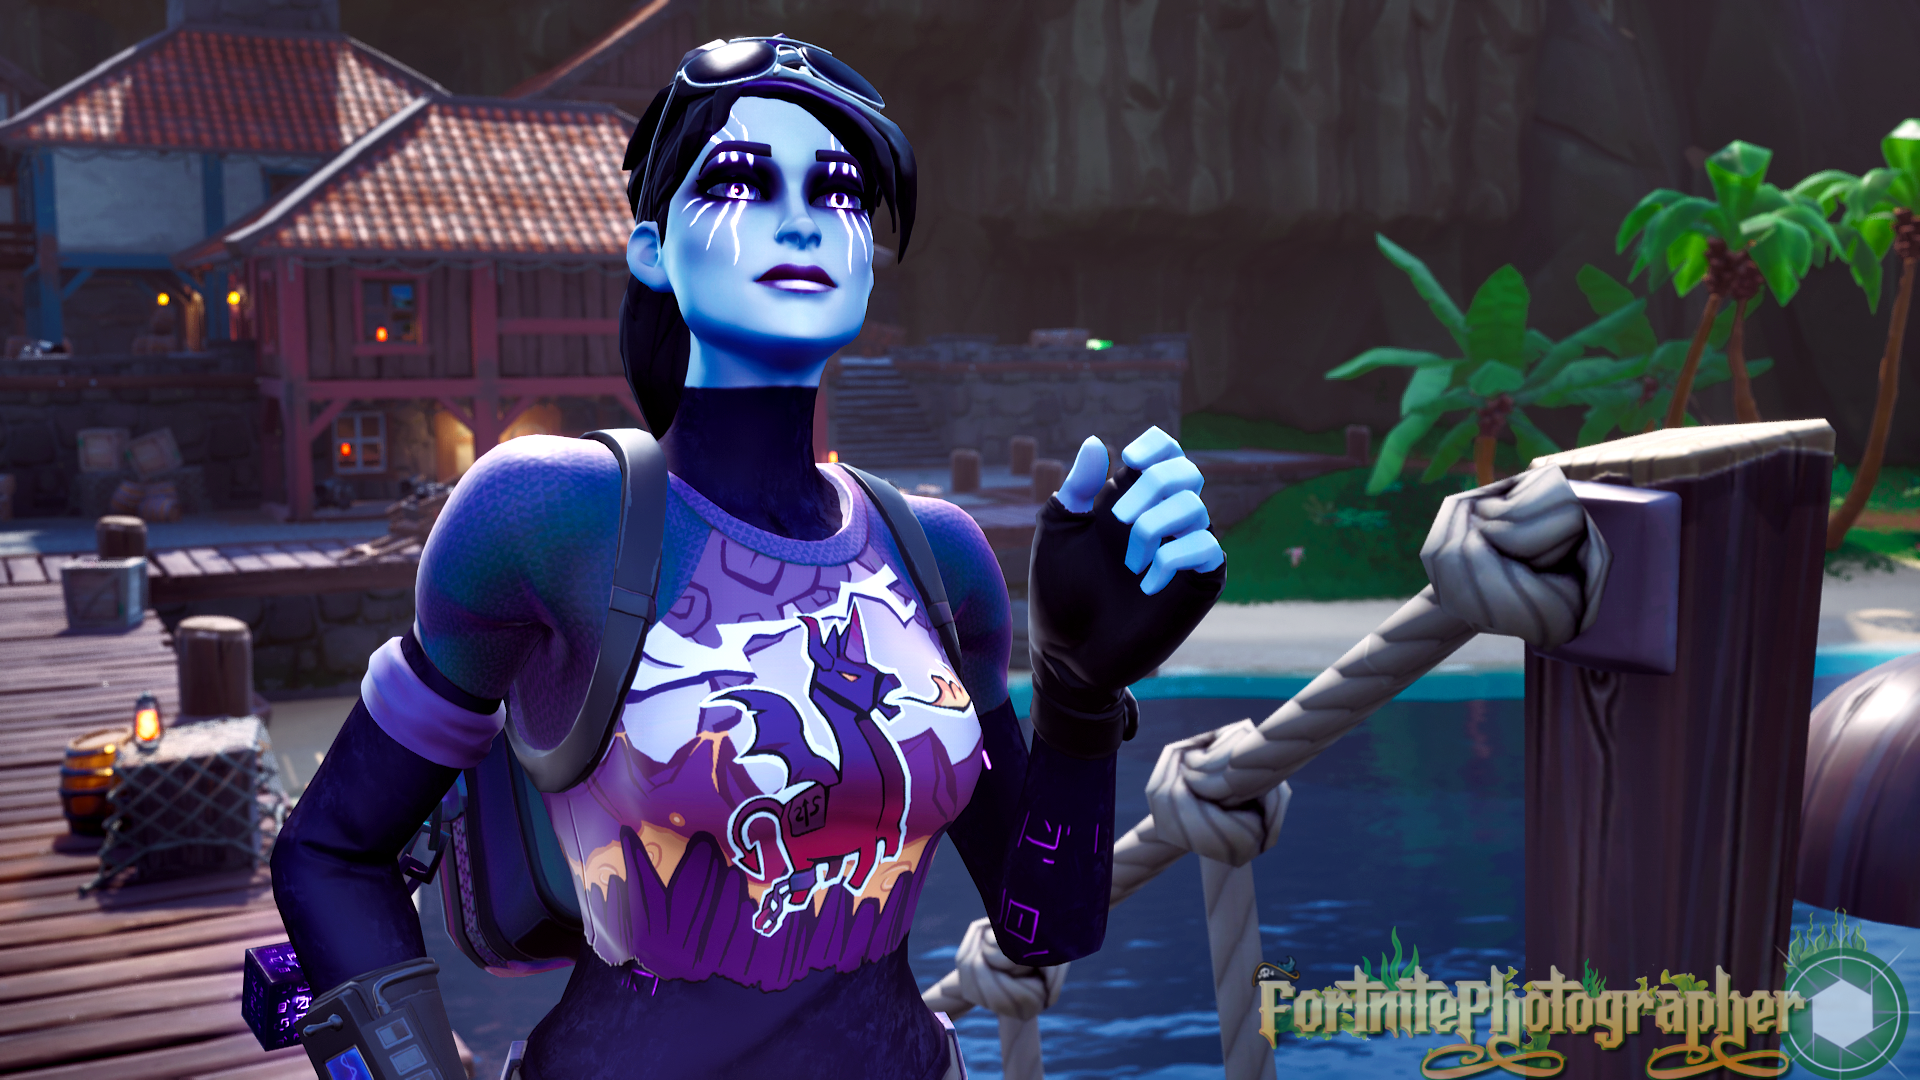 Fortnite All Skins Skin Tracker Bomber Outfit Skins Characters Skin Images